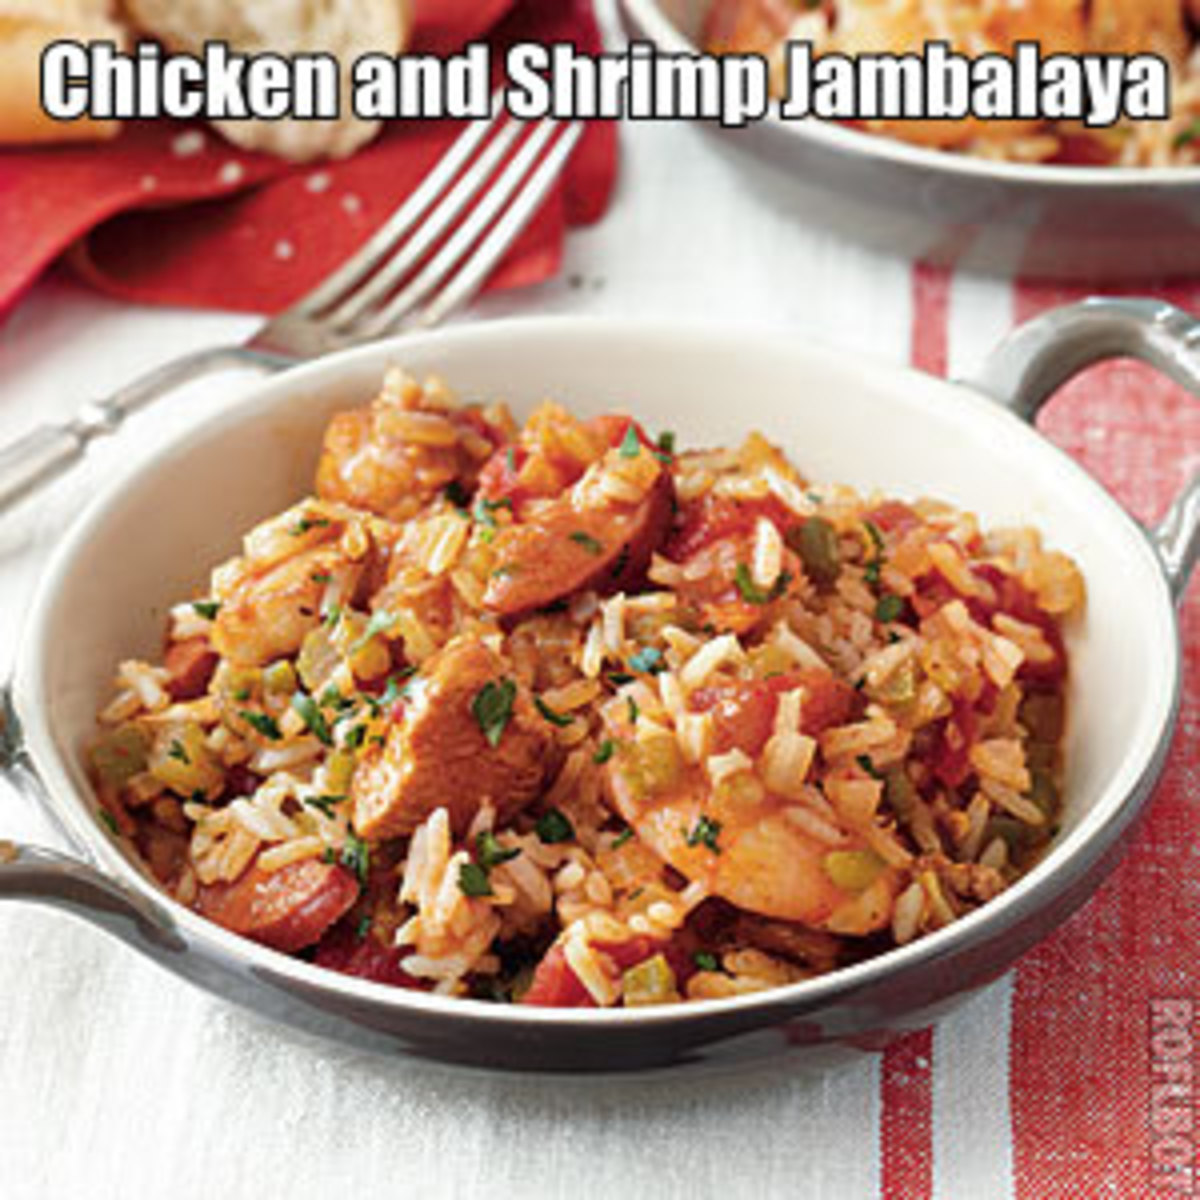 Have you ever had Jambalaya? If not then you're in for a treat. Here were going to be making a delicious Chicken and Shrimp Jambalaya that every one is sure to love.